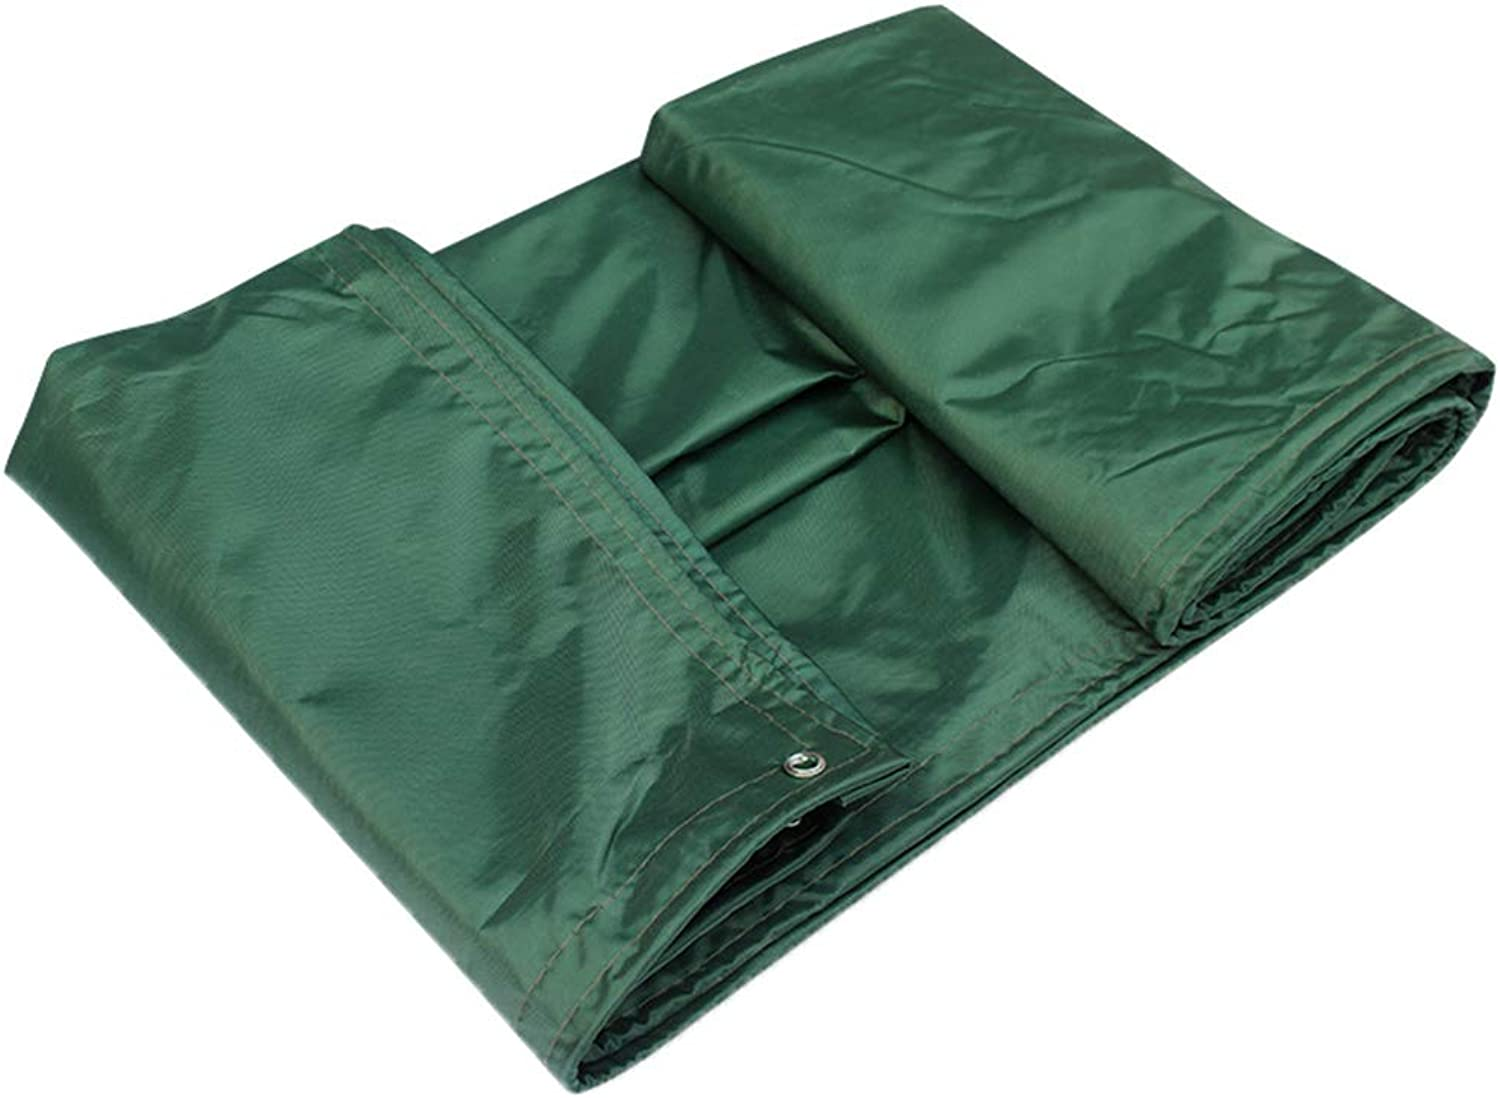 Tarpaulin AntiAging Antioxidant Waterproof Heavy Duty Rainproof UV Resistant Camping Shelter with Metal Hole Eye Ground Sheet Cover Cloth